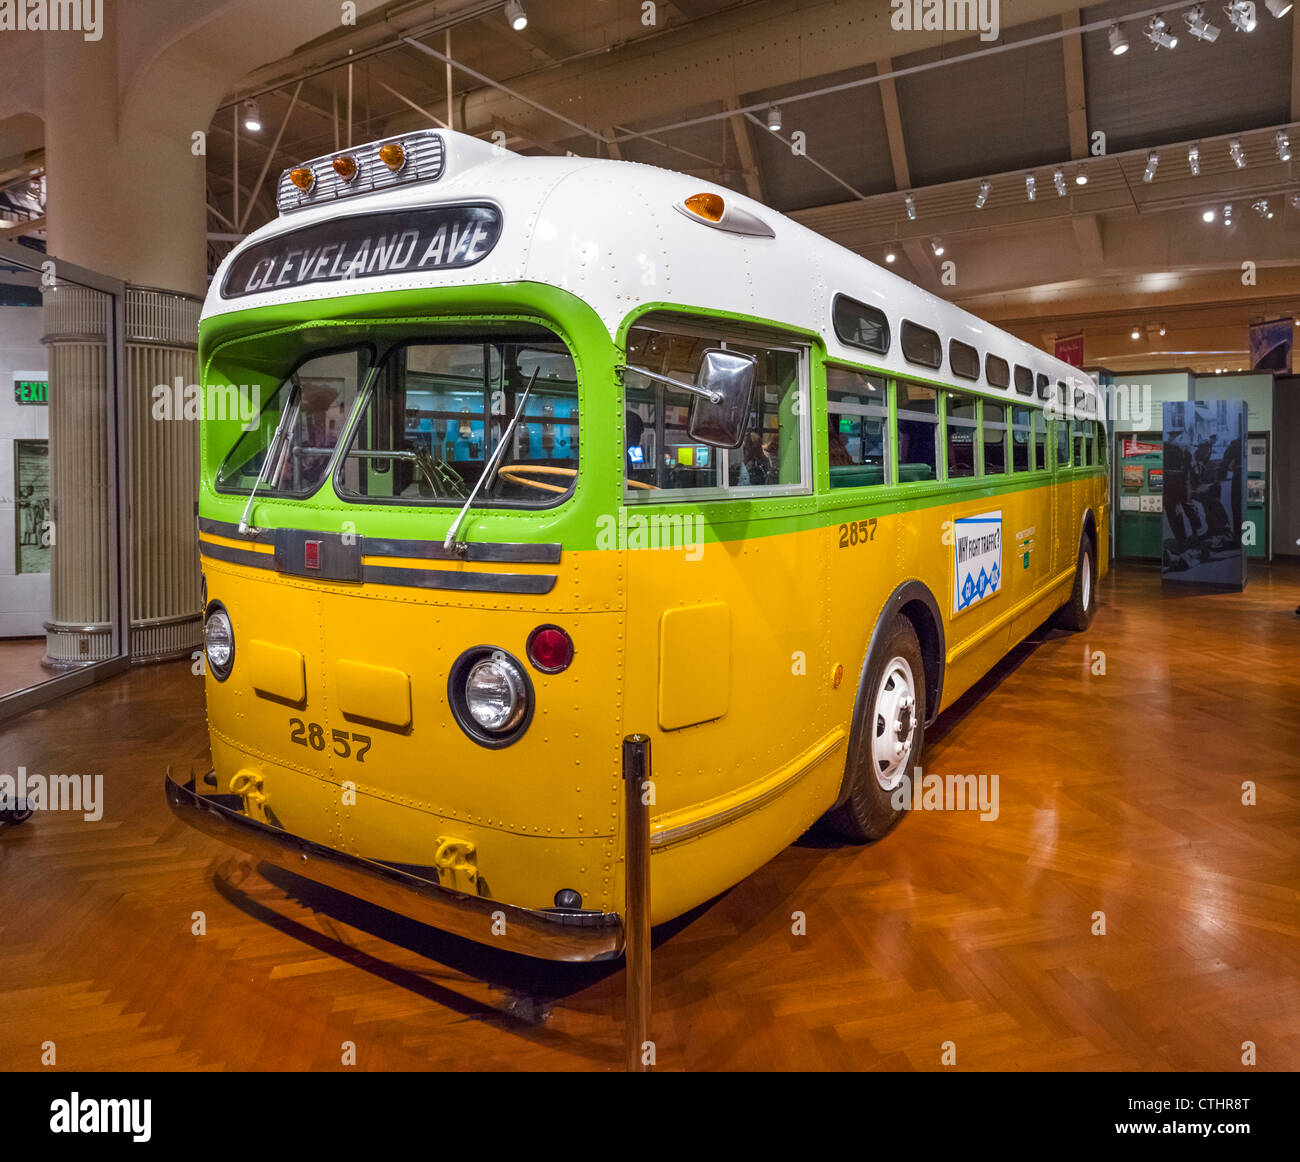 Bus on which Rosa Parks refused to give up her seat in Montgomery in 1955, Henry Ford Museum, Dearborn, Detroit, Stock Photo